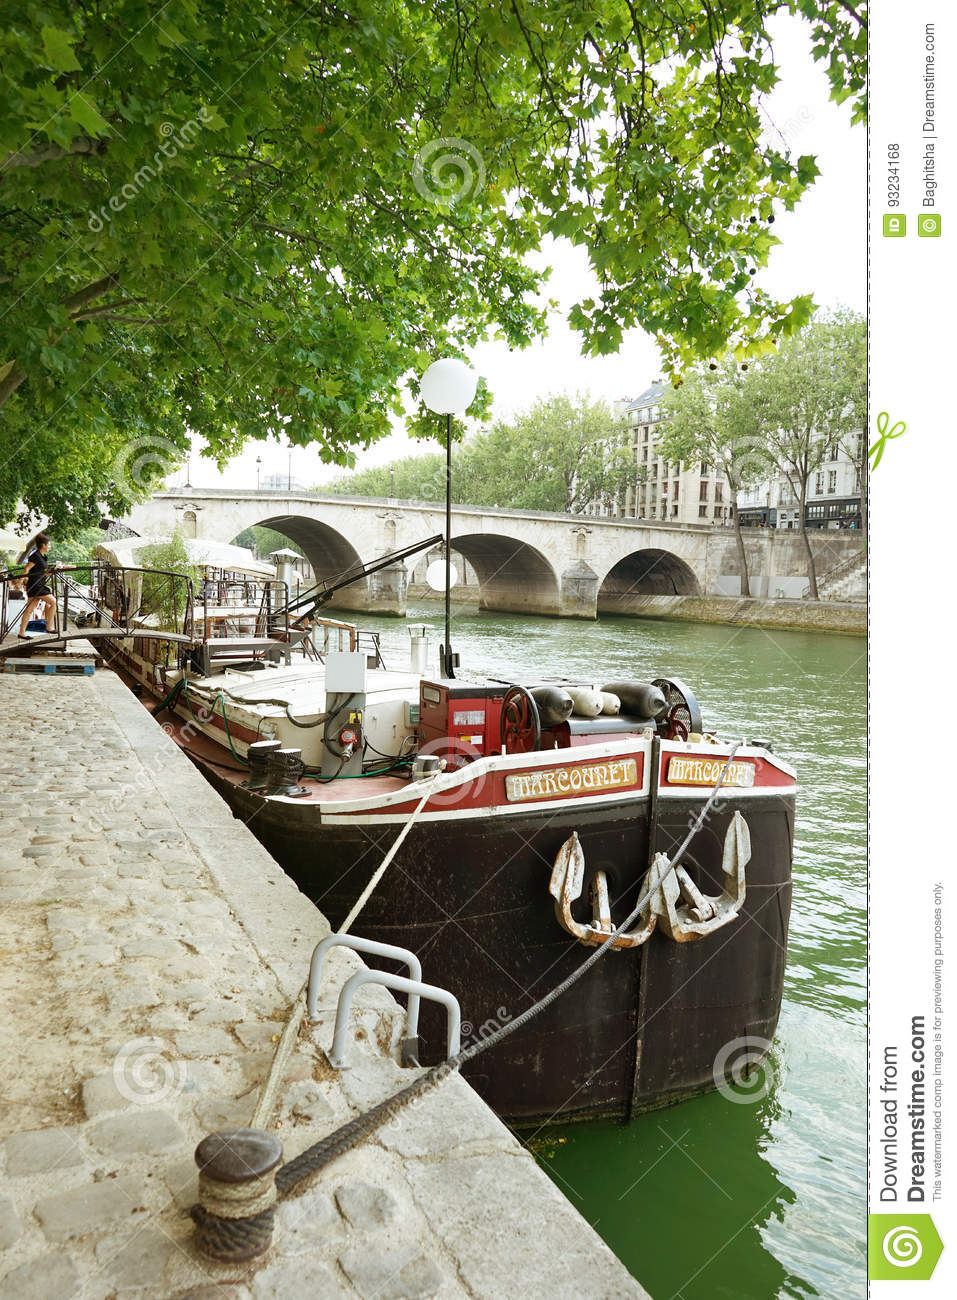 restaurant barge seine river paris france editorial stock photo image 93234168. Black Bedroom Furniture Sets. Home Design Ideas